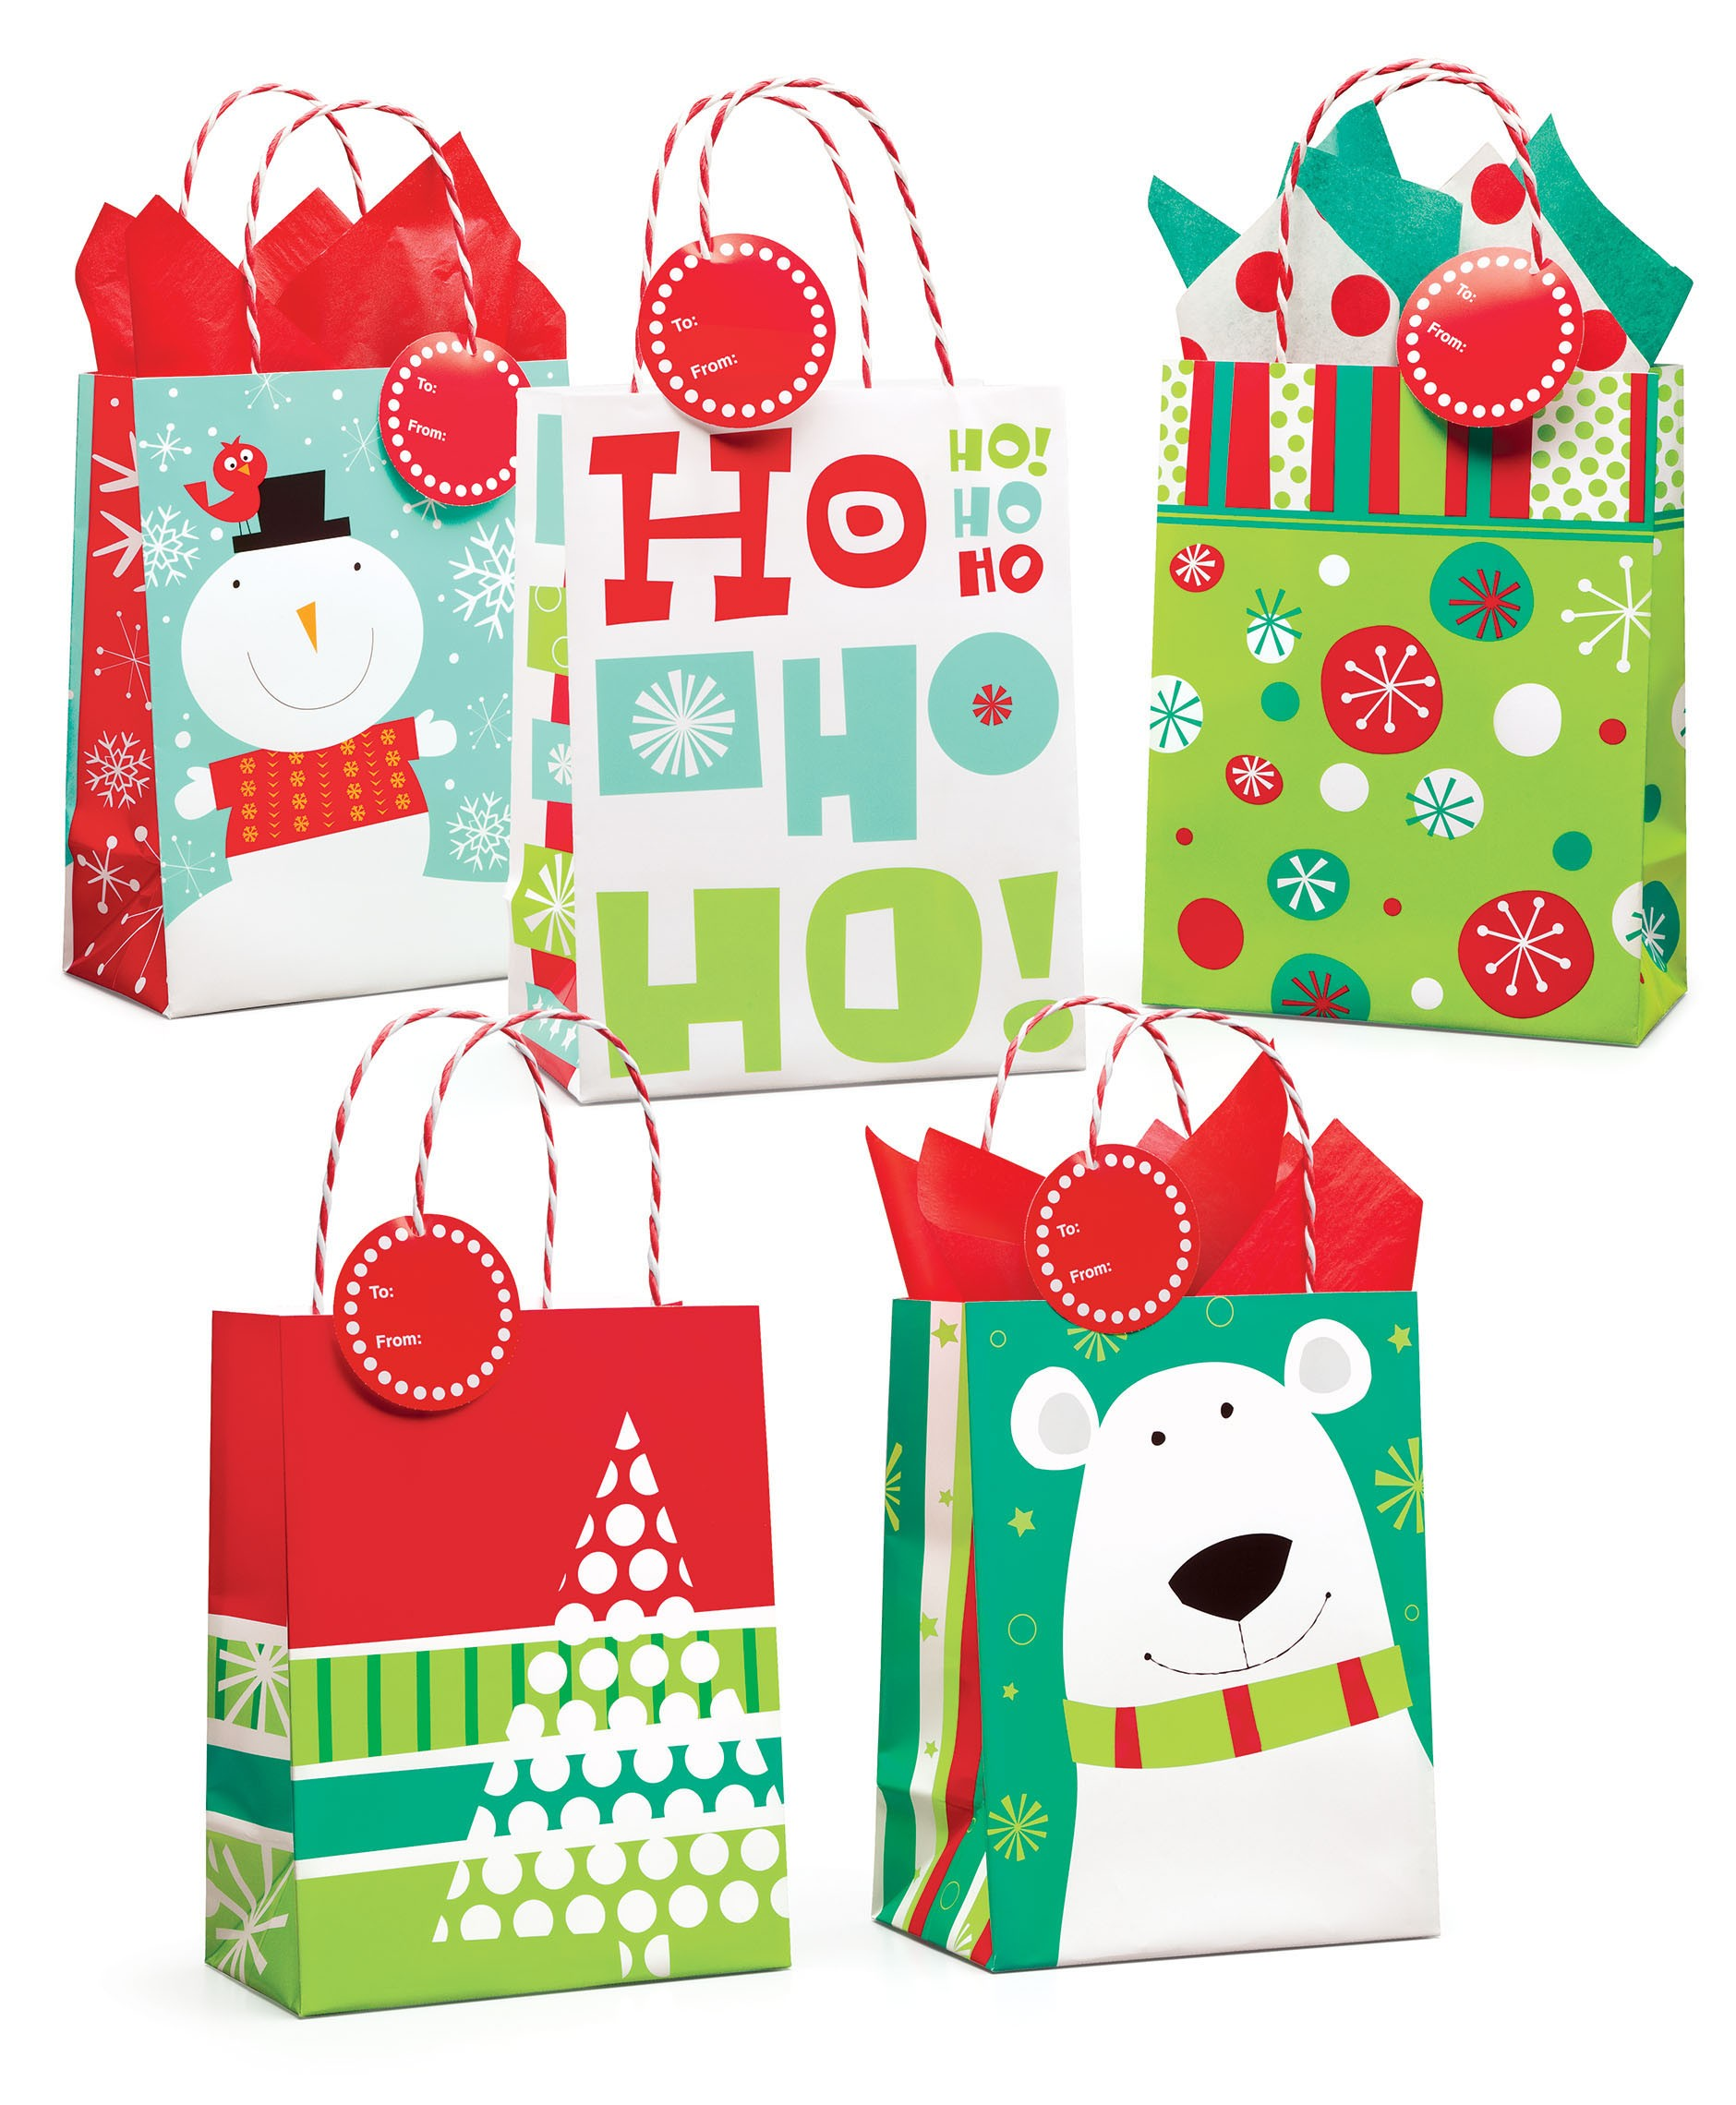 Women's Center Gift Program 2018 - Help The Women's Center provide Christmas gifts to women experiencing homelessness in The Triangle who are struggling to get back on their feet this holiday season. Through our gift program, you will have the opportunity to select one or more gift request tags, purchase the gift requested on the tag and return it to The Women's Center in a holiday gift bag on or before Monday December 10, 2017. The gifts are priced between $10 and $35. We will make sure the gifts are delivered in time for Christmas!